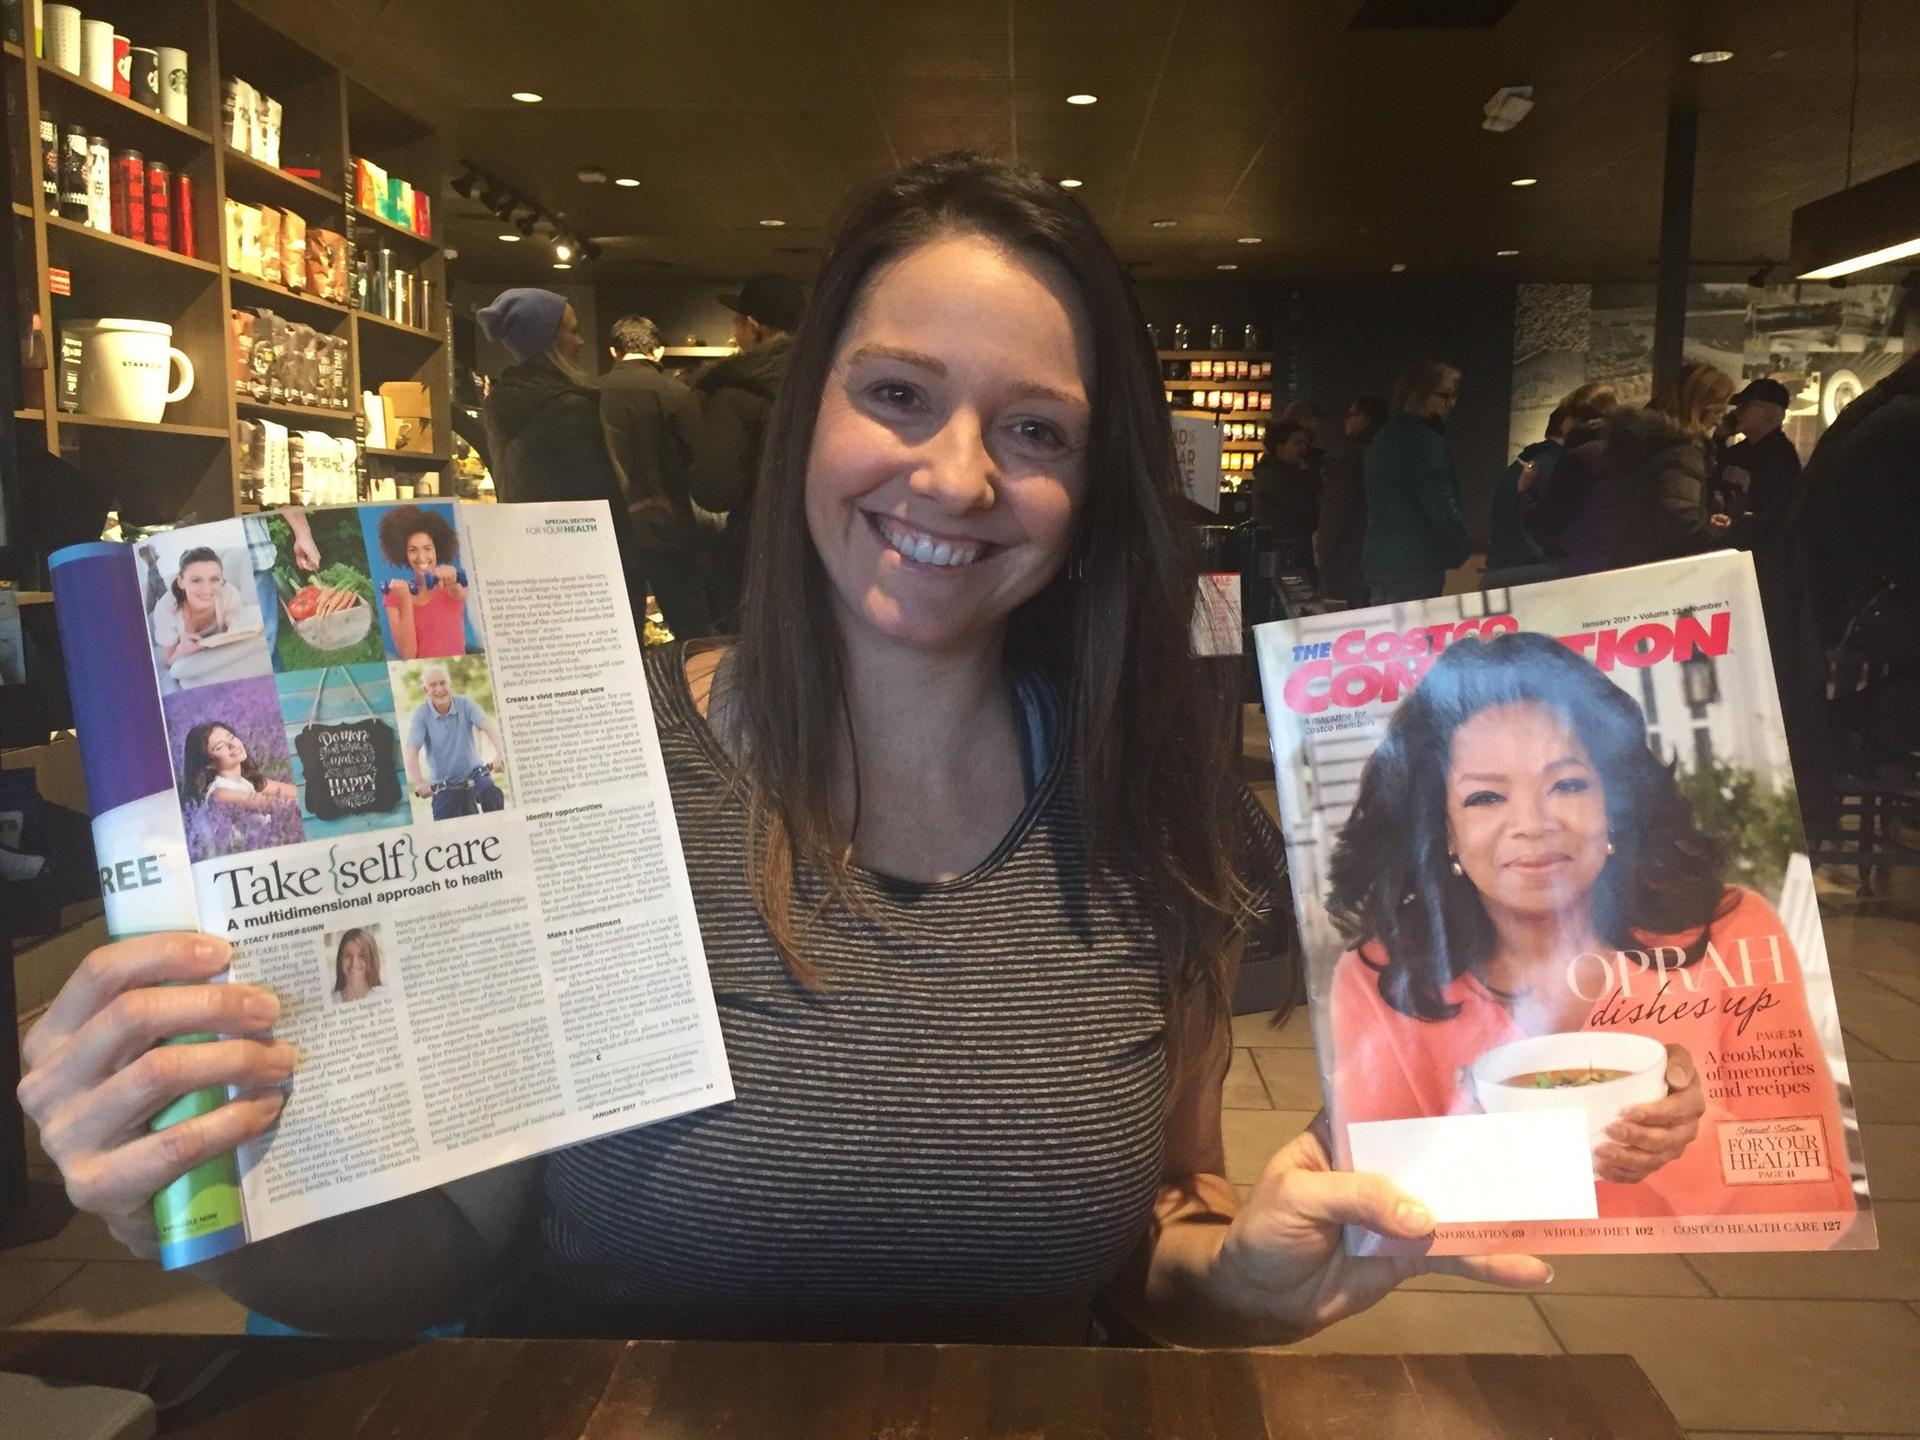 LivingUpp founder Stacy Fisher with her self-care article in The Costco Connection